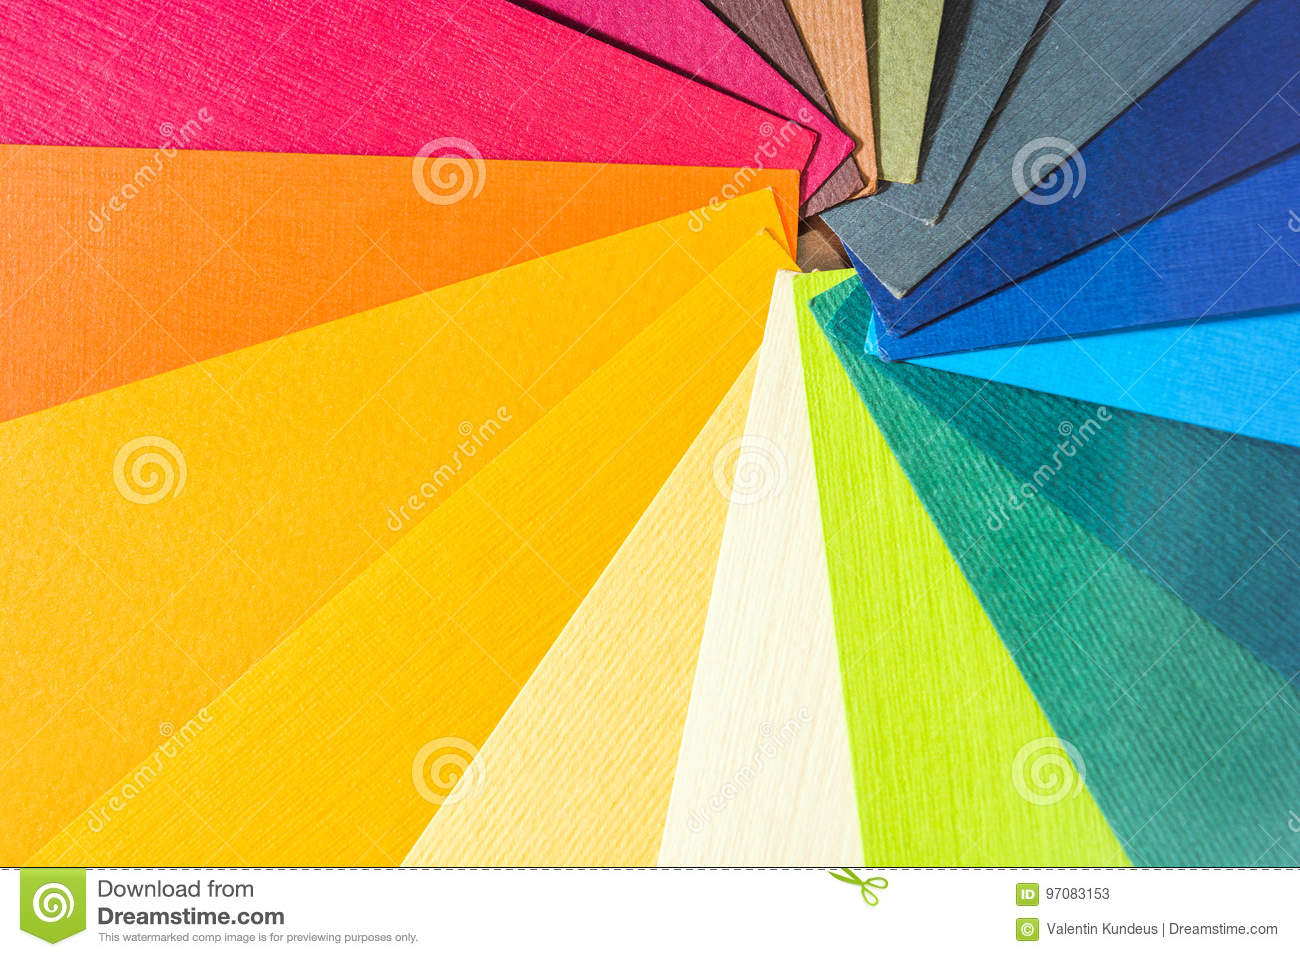 Color palette guide. Colored textured paper samples swatch catalog. Bright and juicy rainbow colors. Beautiful abstract background